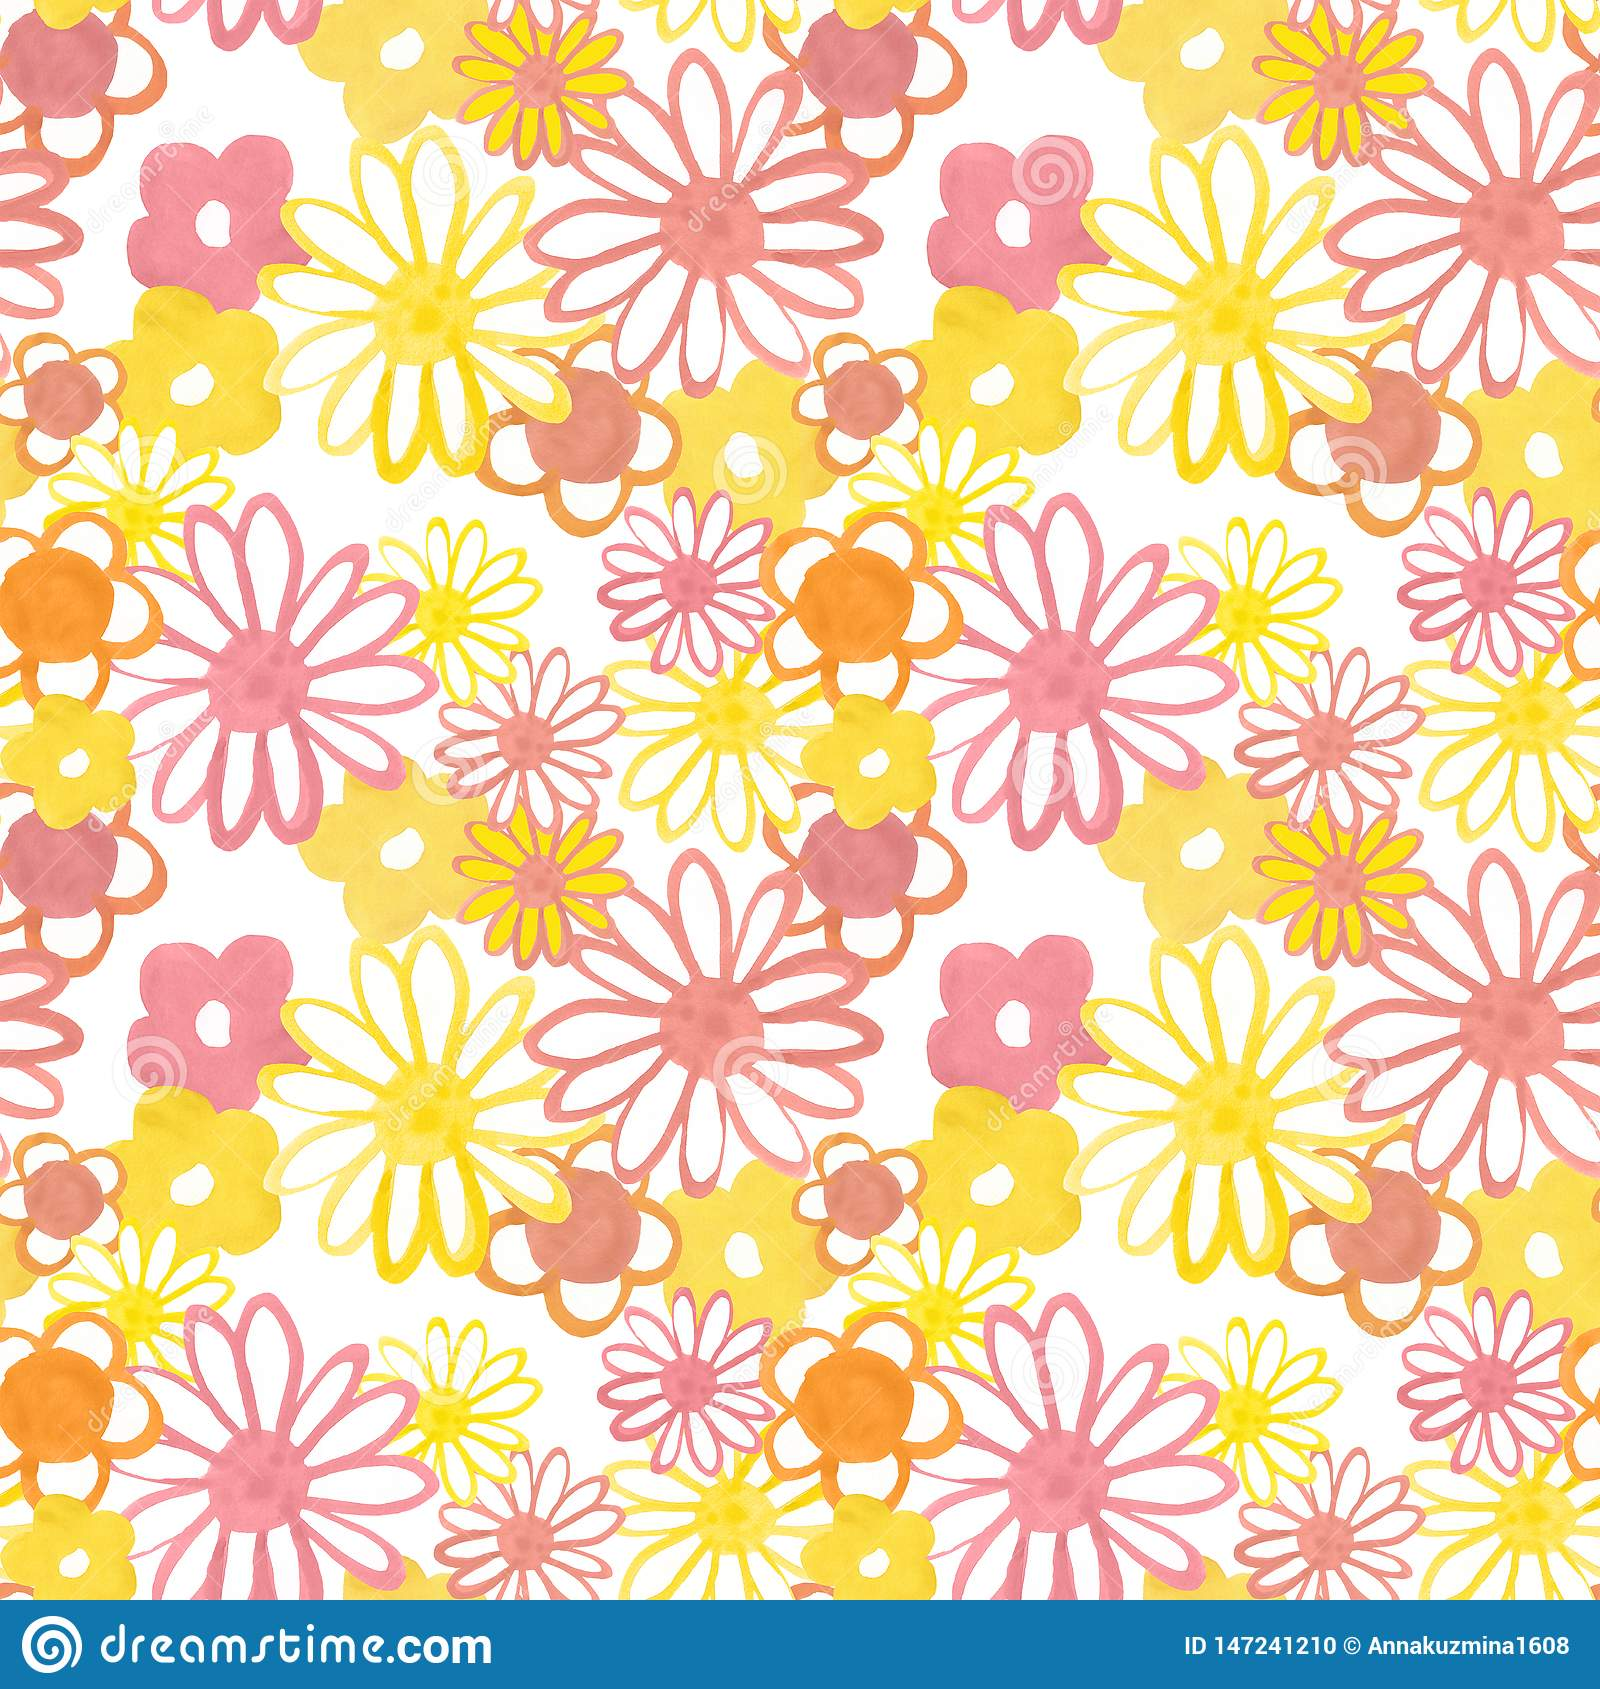 pink yellow orange floral seamless pattern bohemian vintage pattern s s style flower power colorful floral seamles 147241210